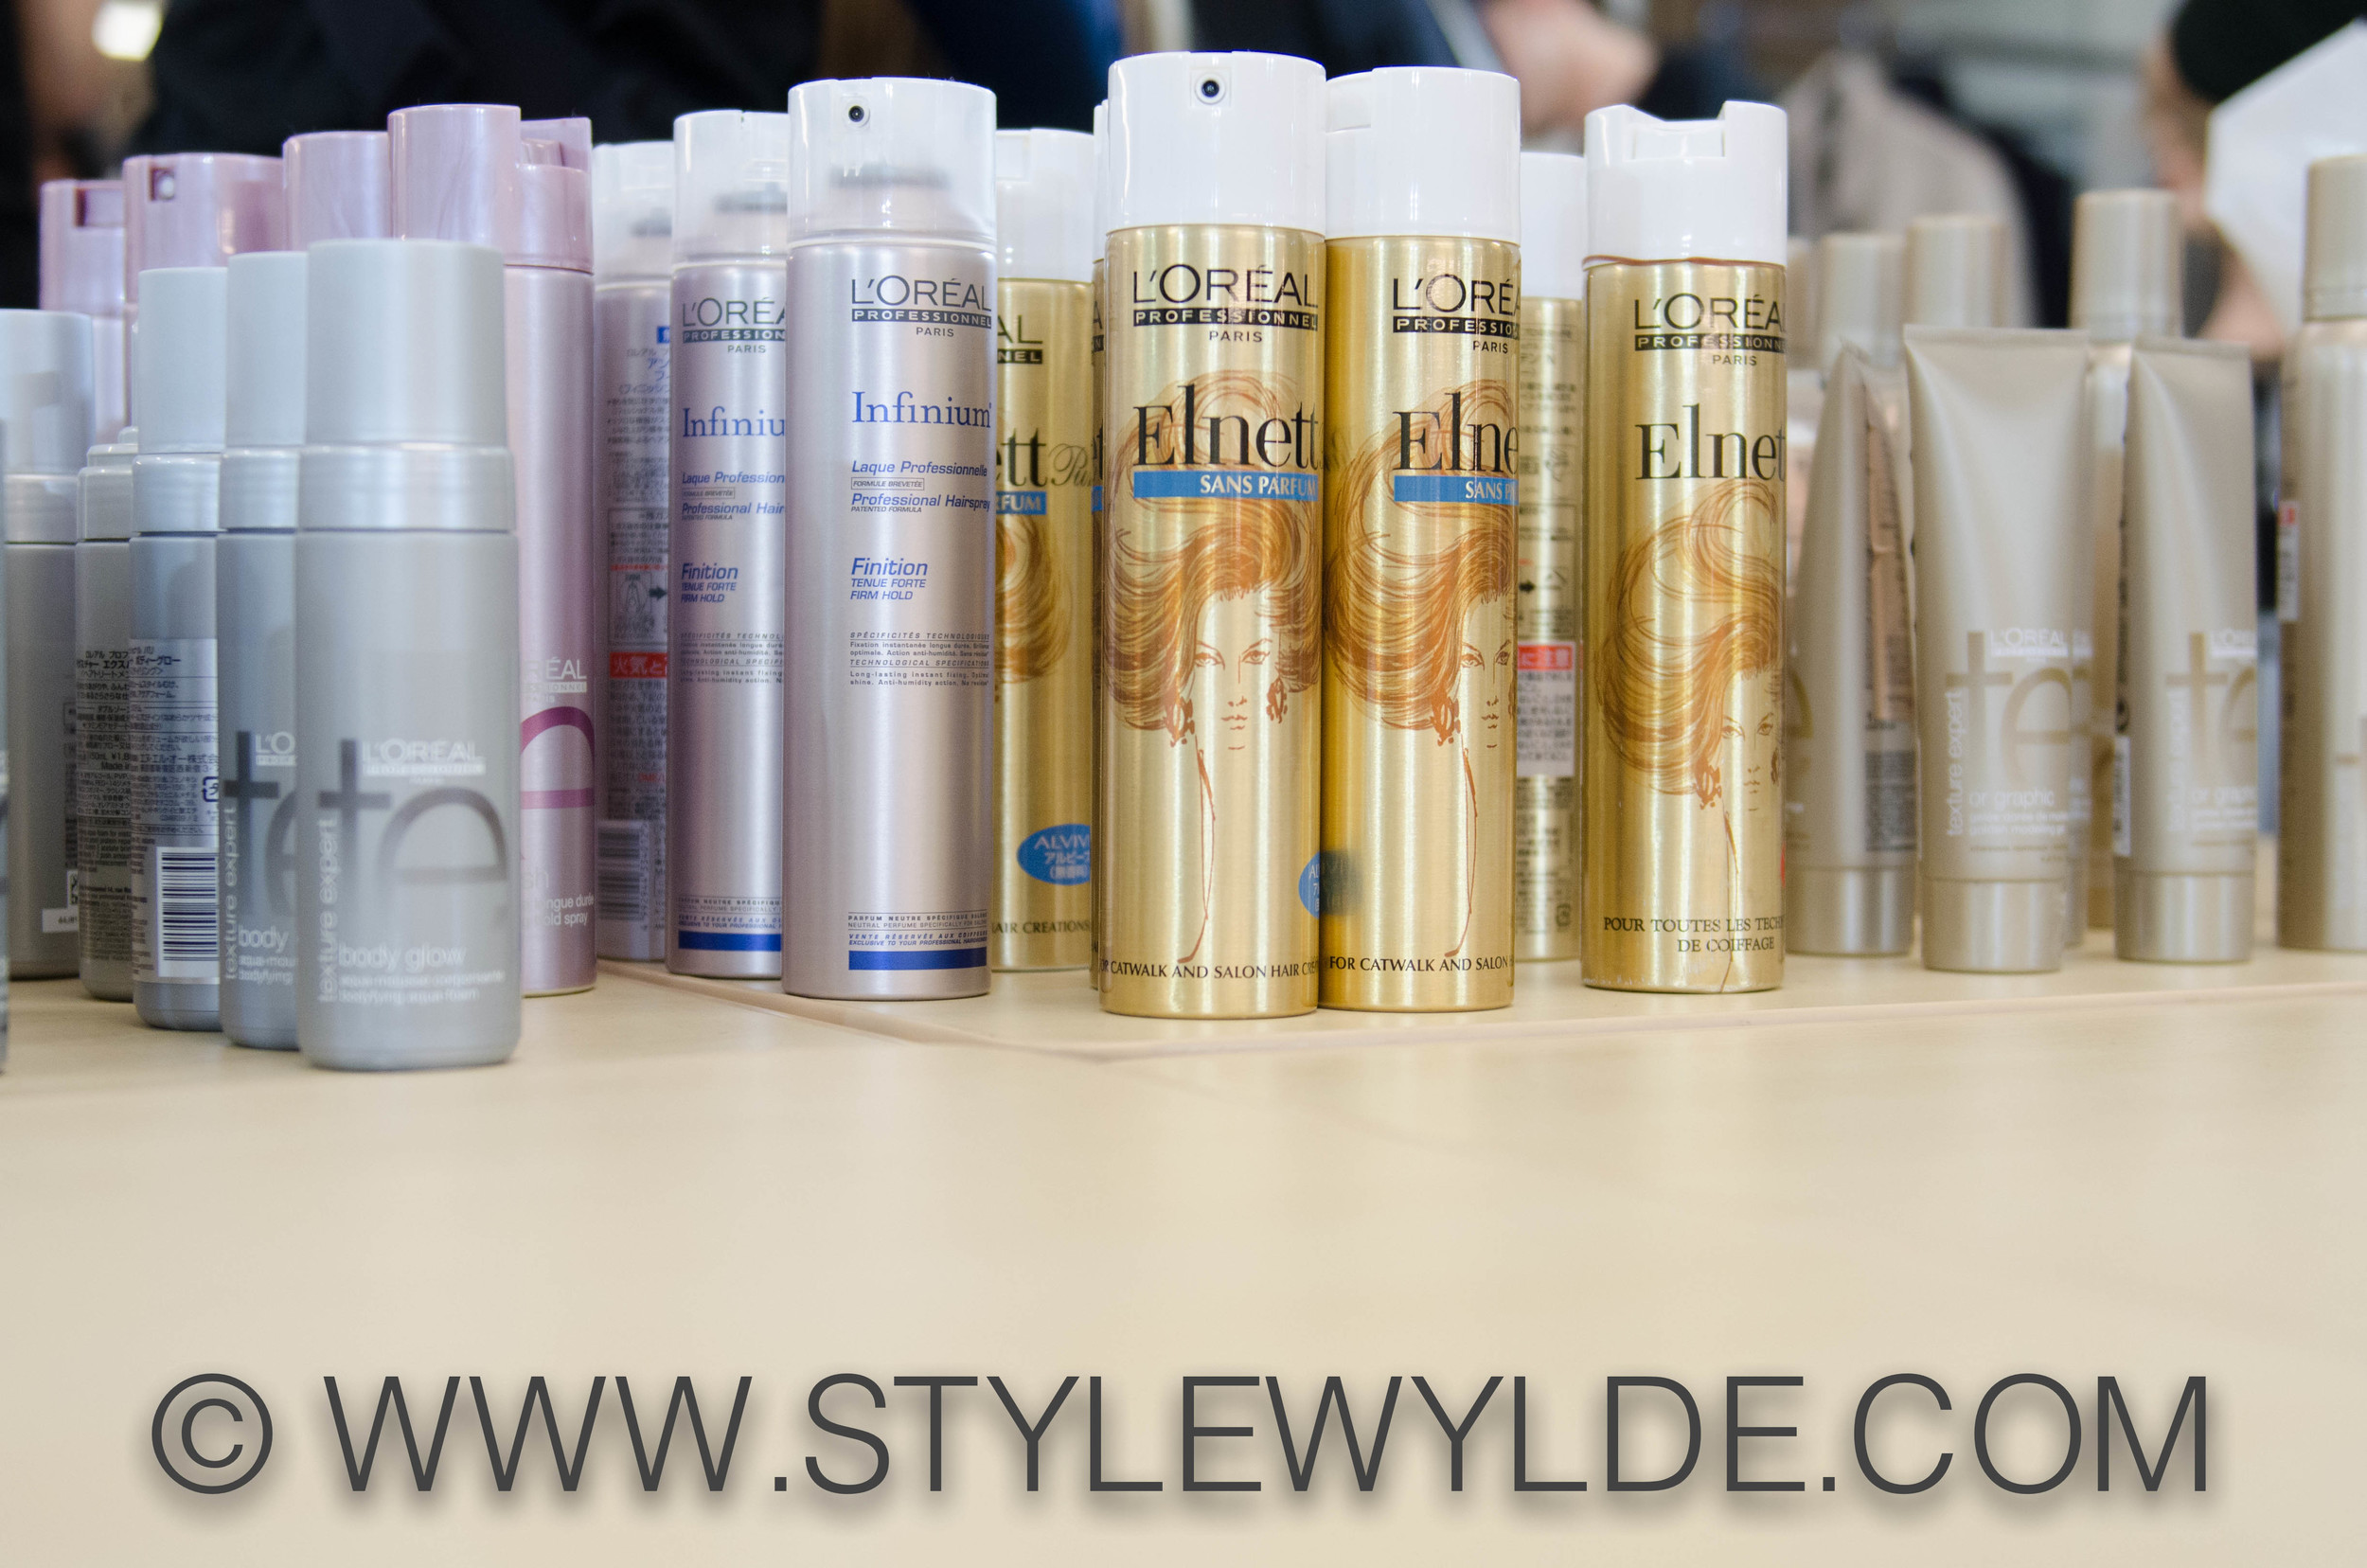 StyleWylde_Loreal_Products_1.jpg